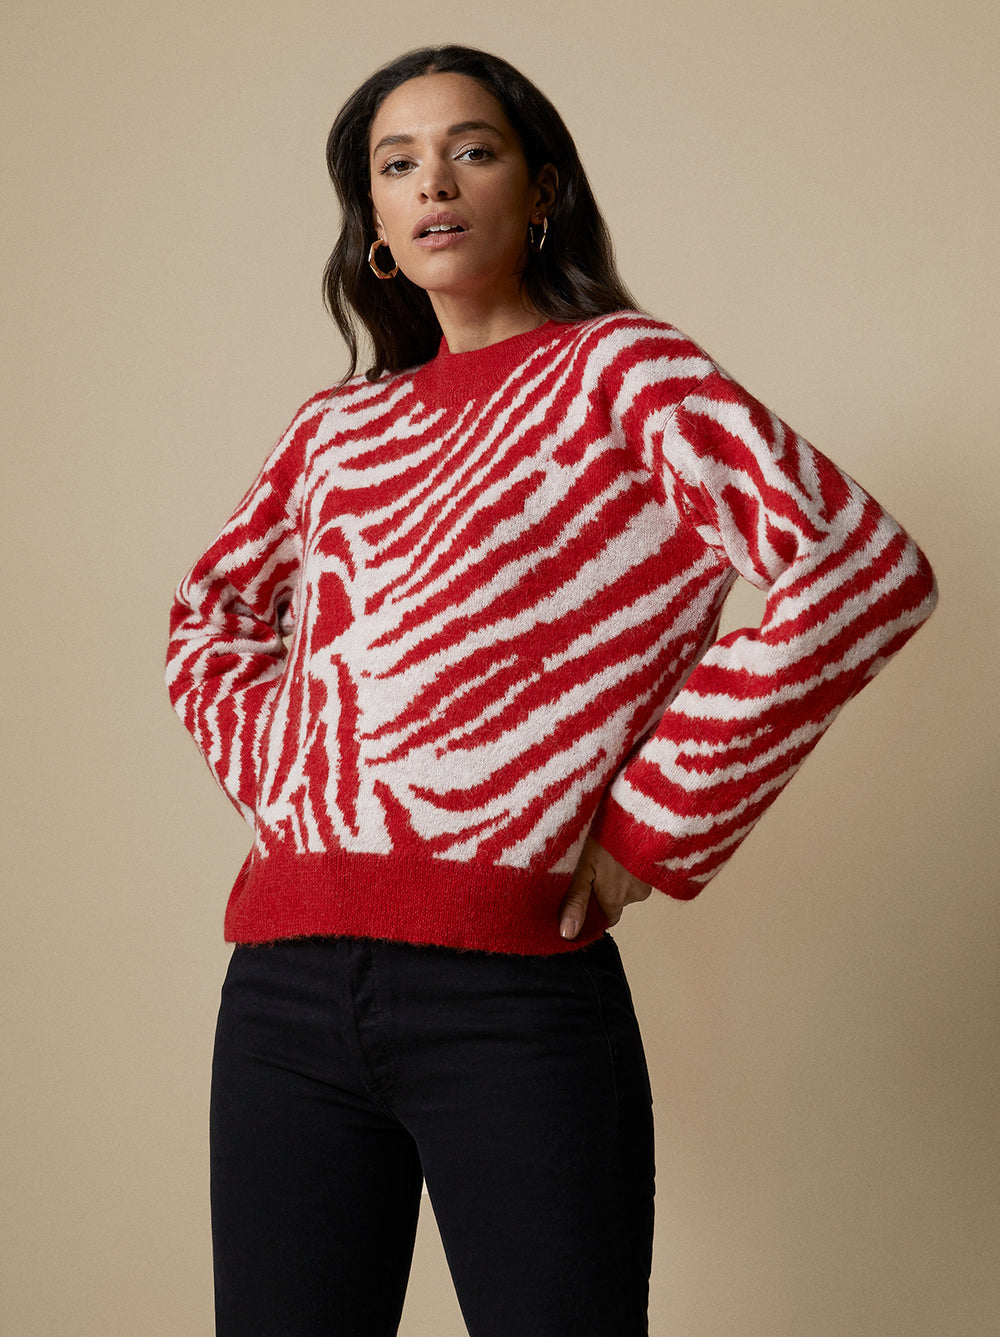 Reese Red Animal Sweater by KITRI Studio